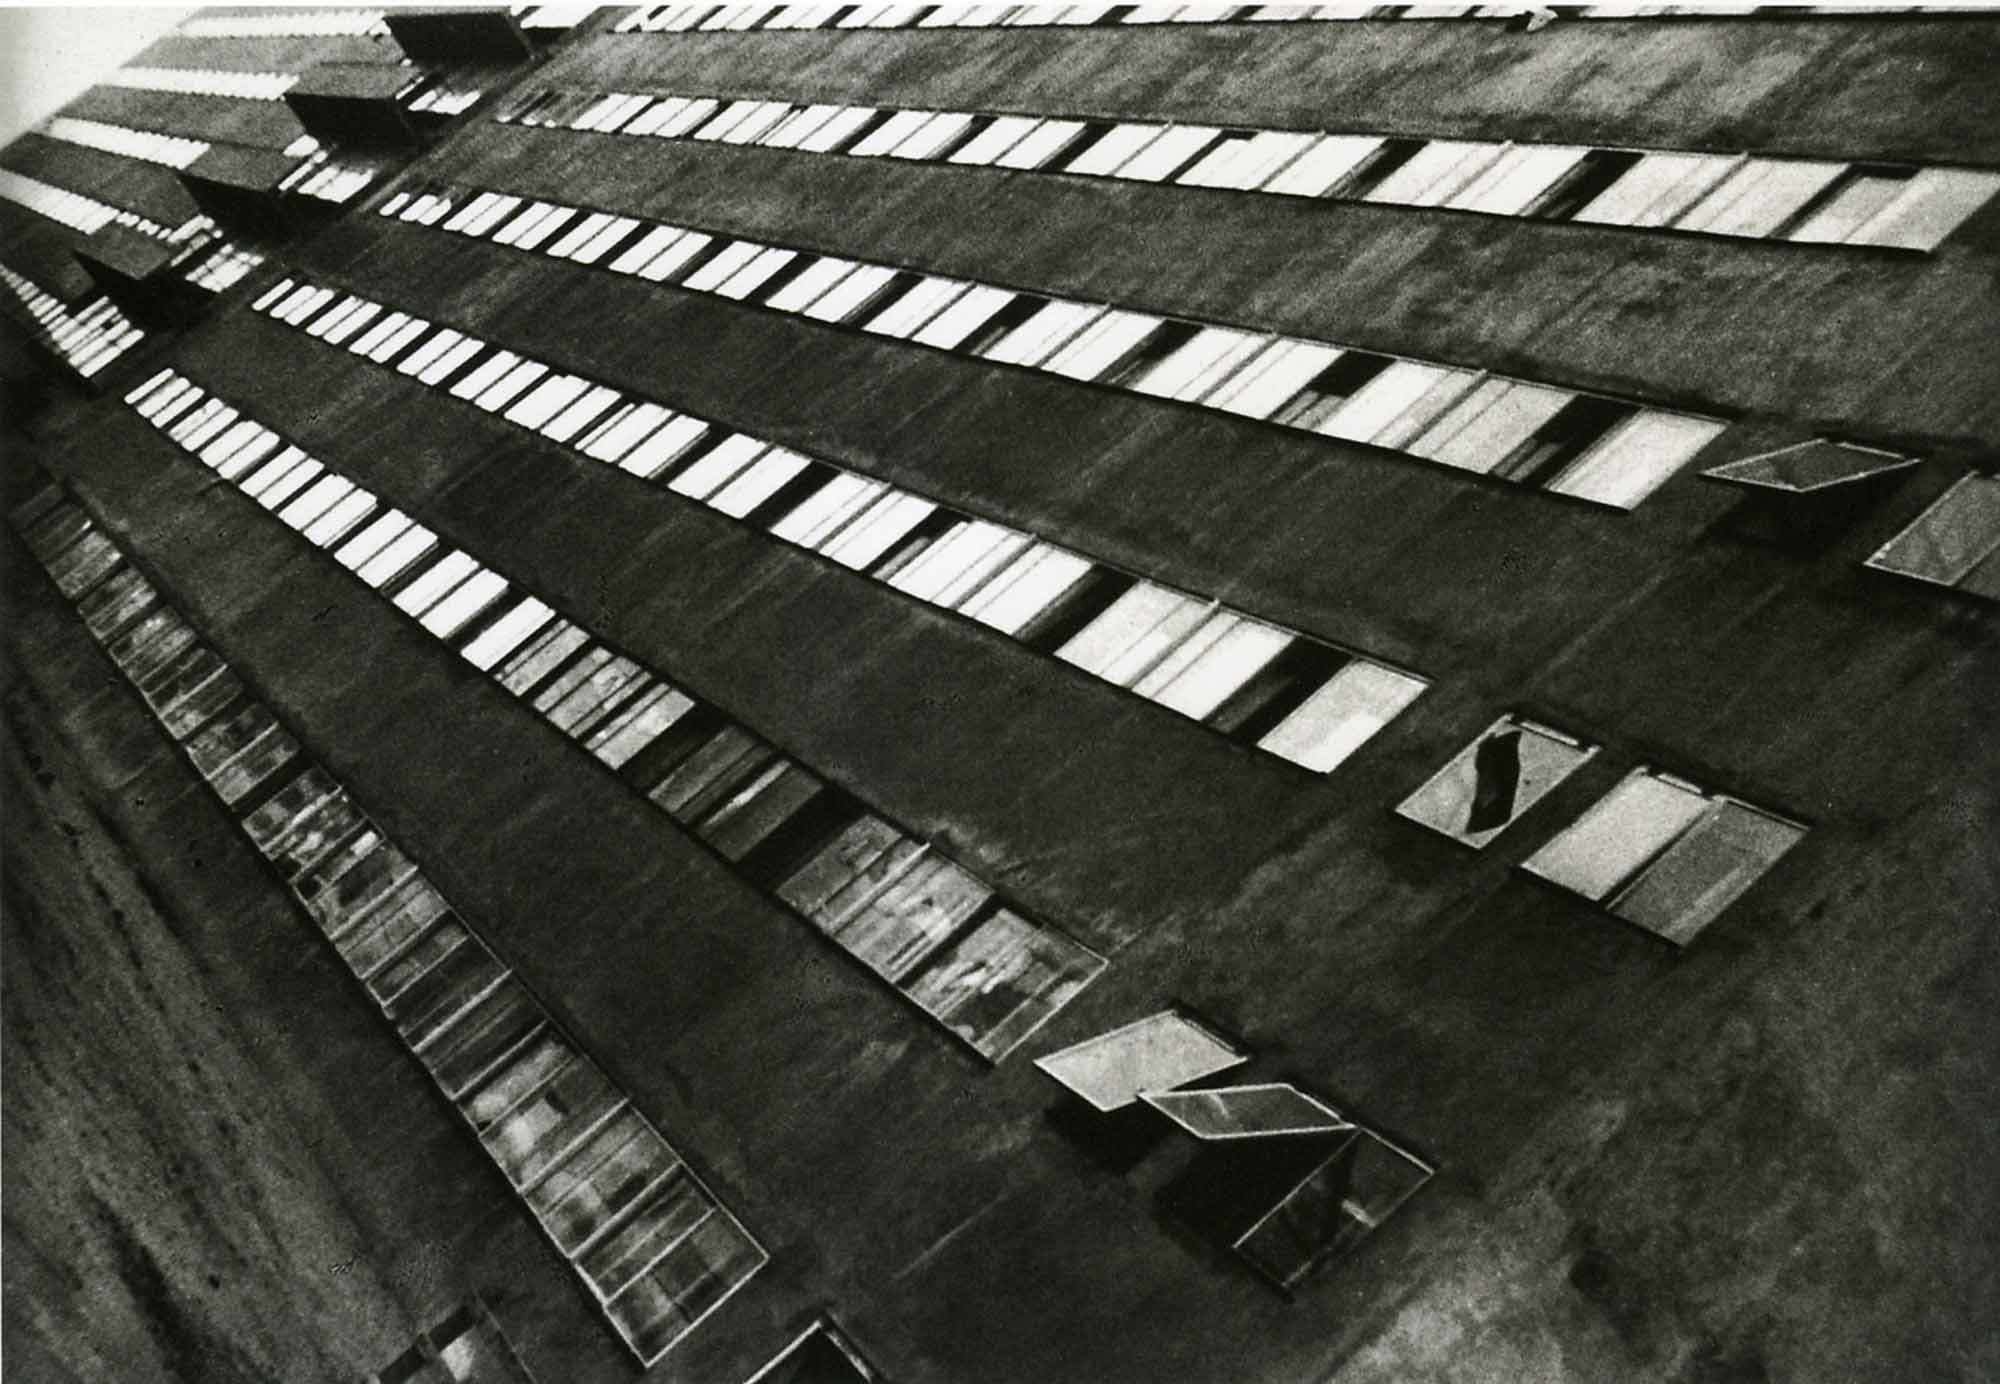 Aleksandr-Rodchenko-Photo_003